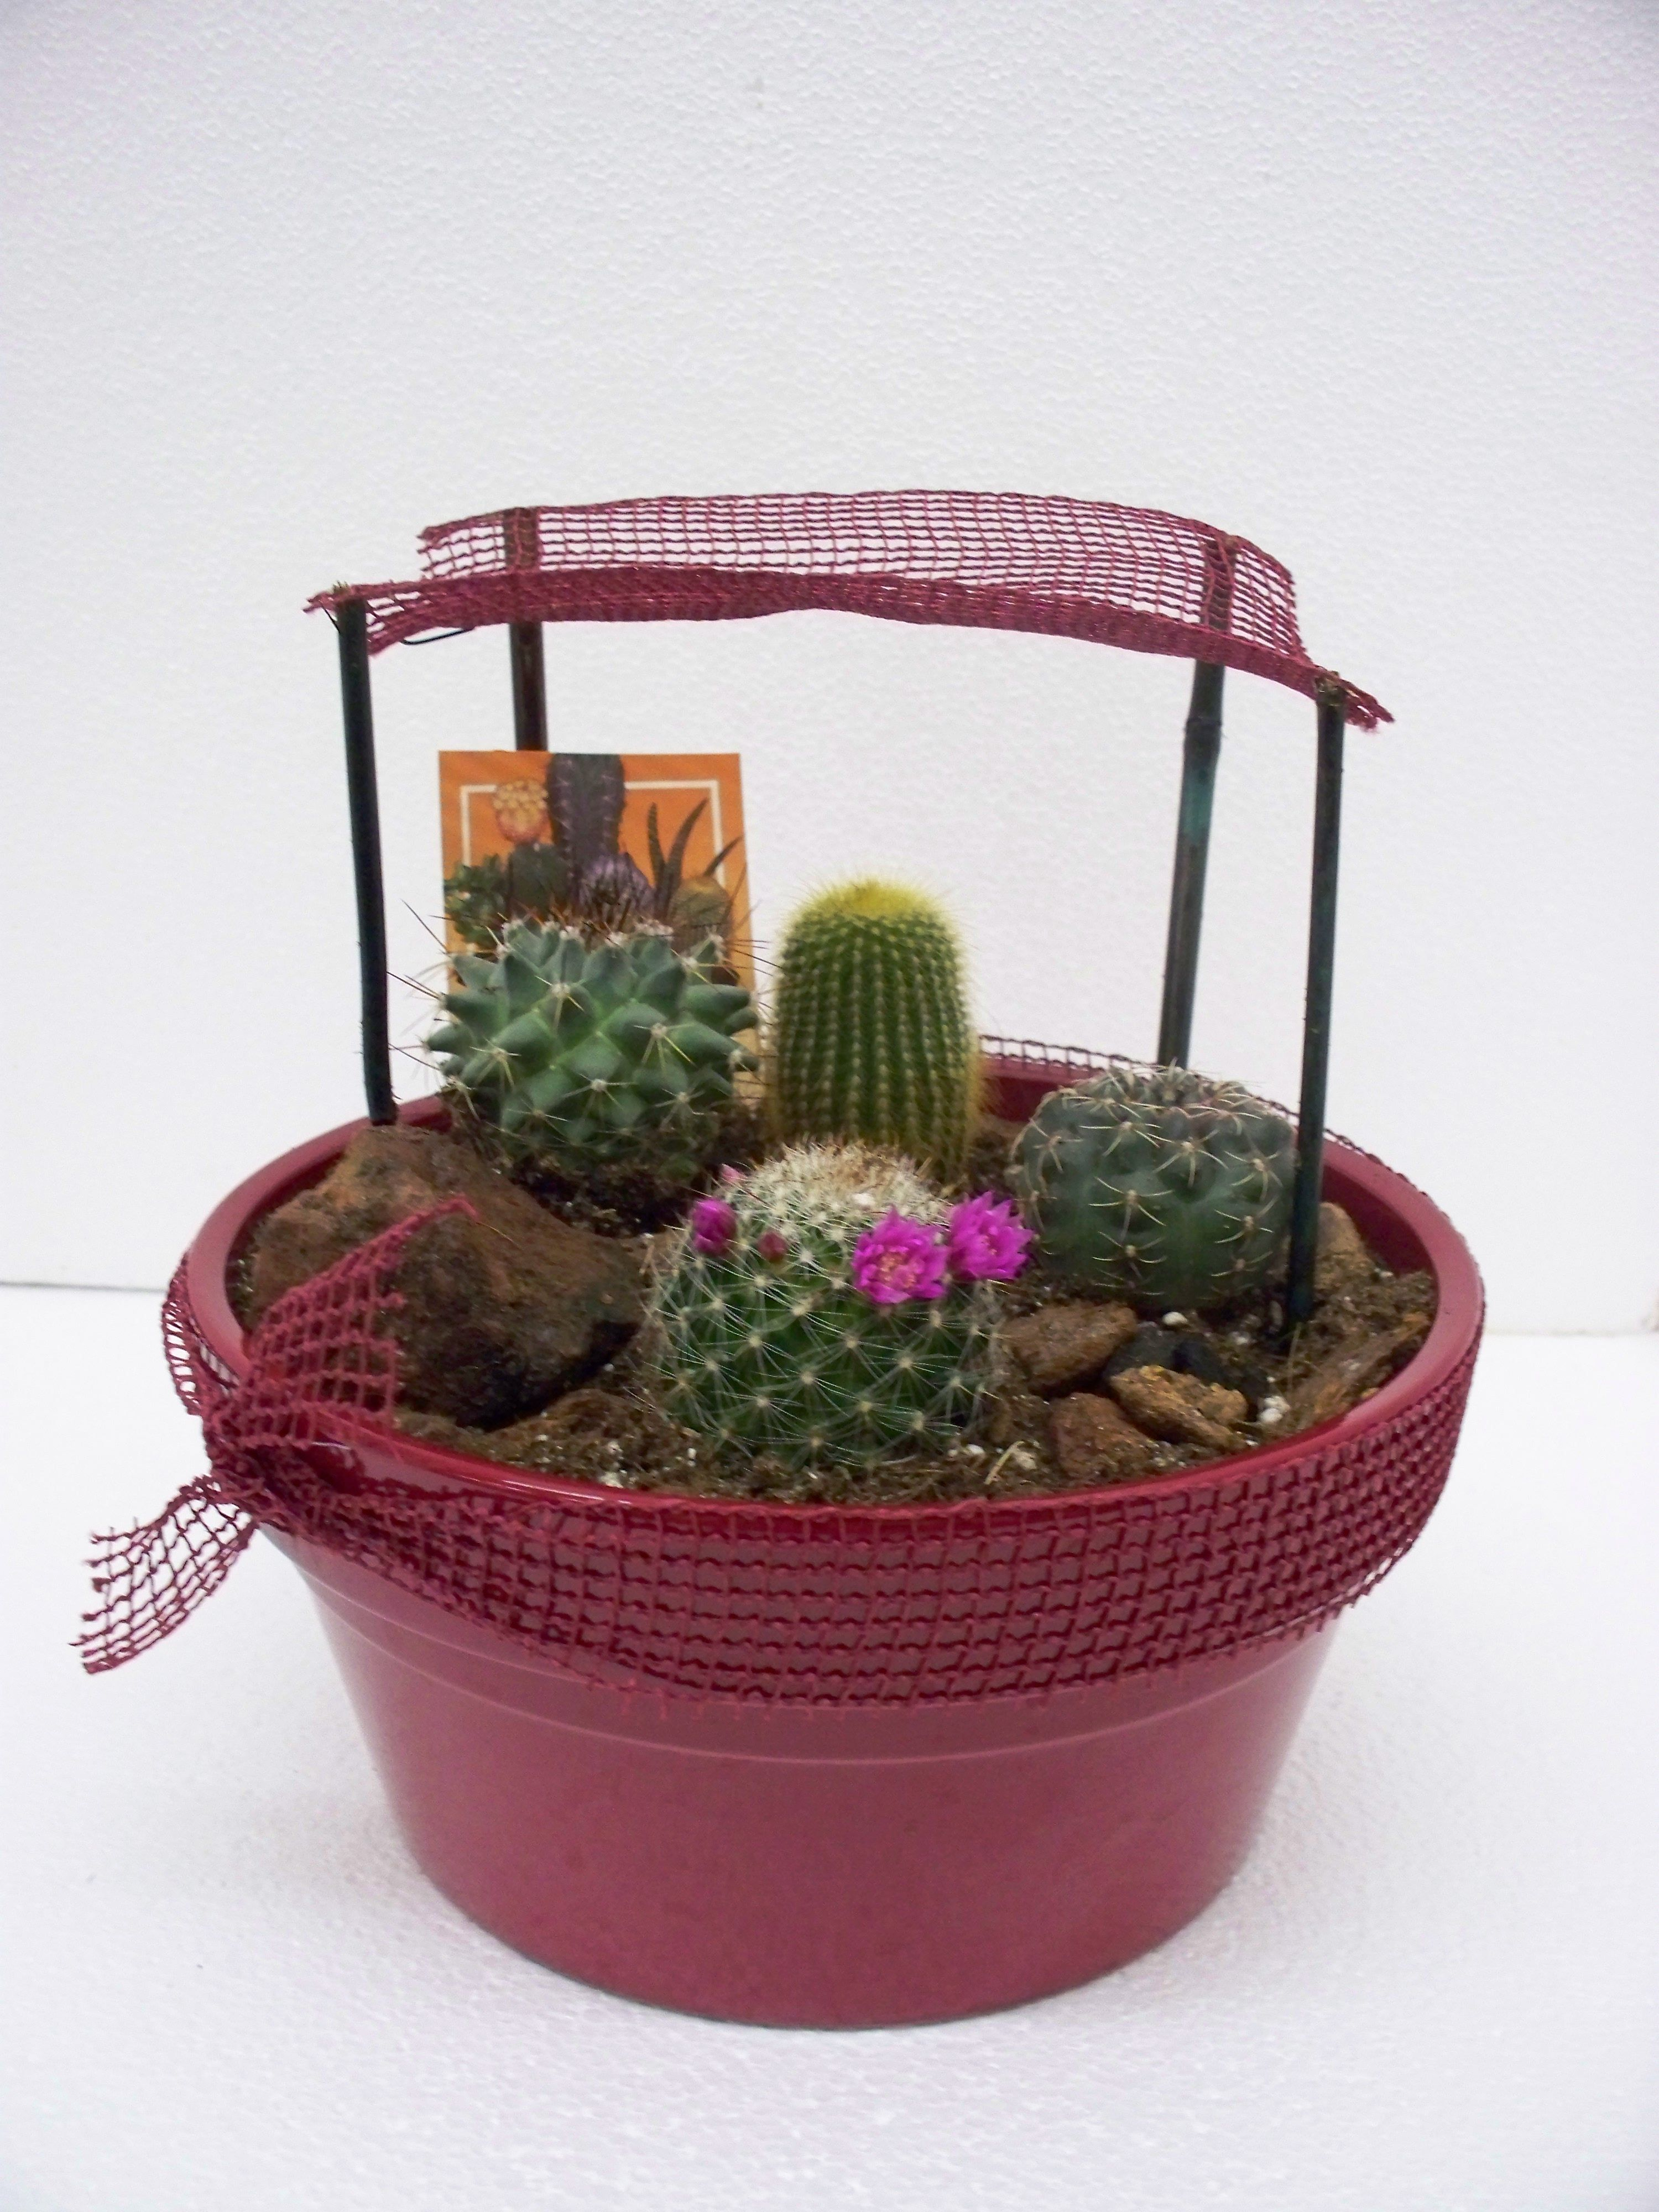 Marvelous Mini Cactus Gardens Are Adorable And Easy To Make, Brightening Up A Office  Desk Or